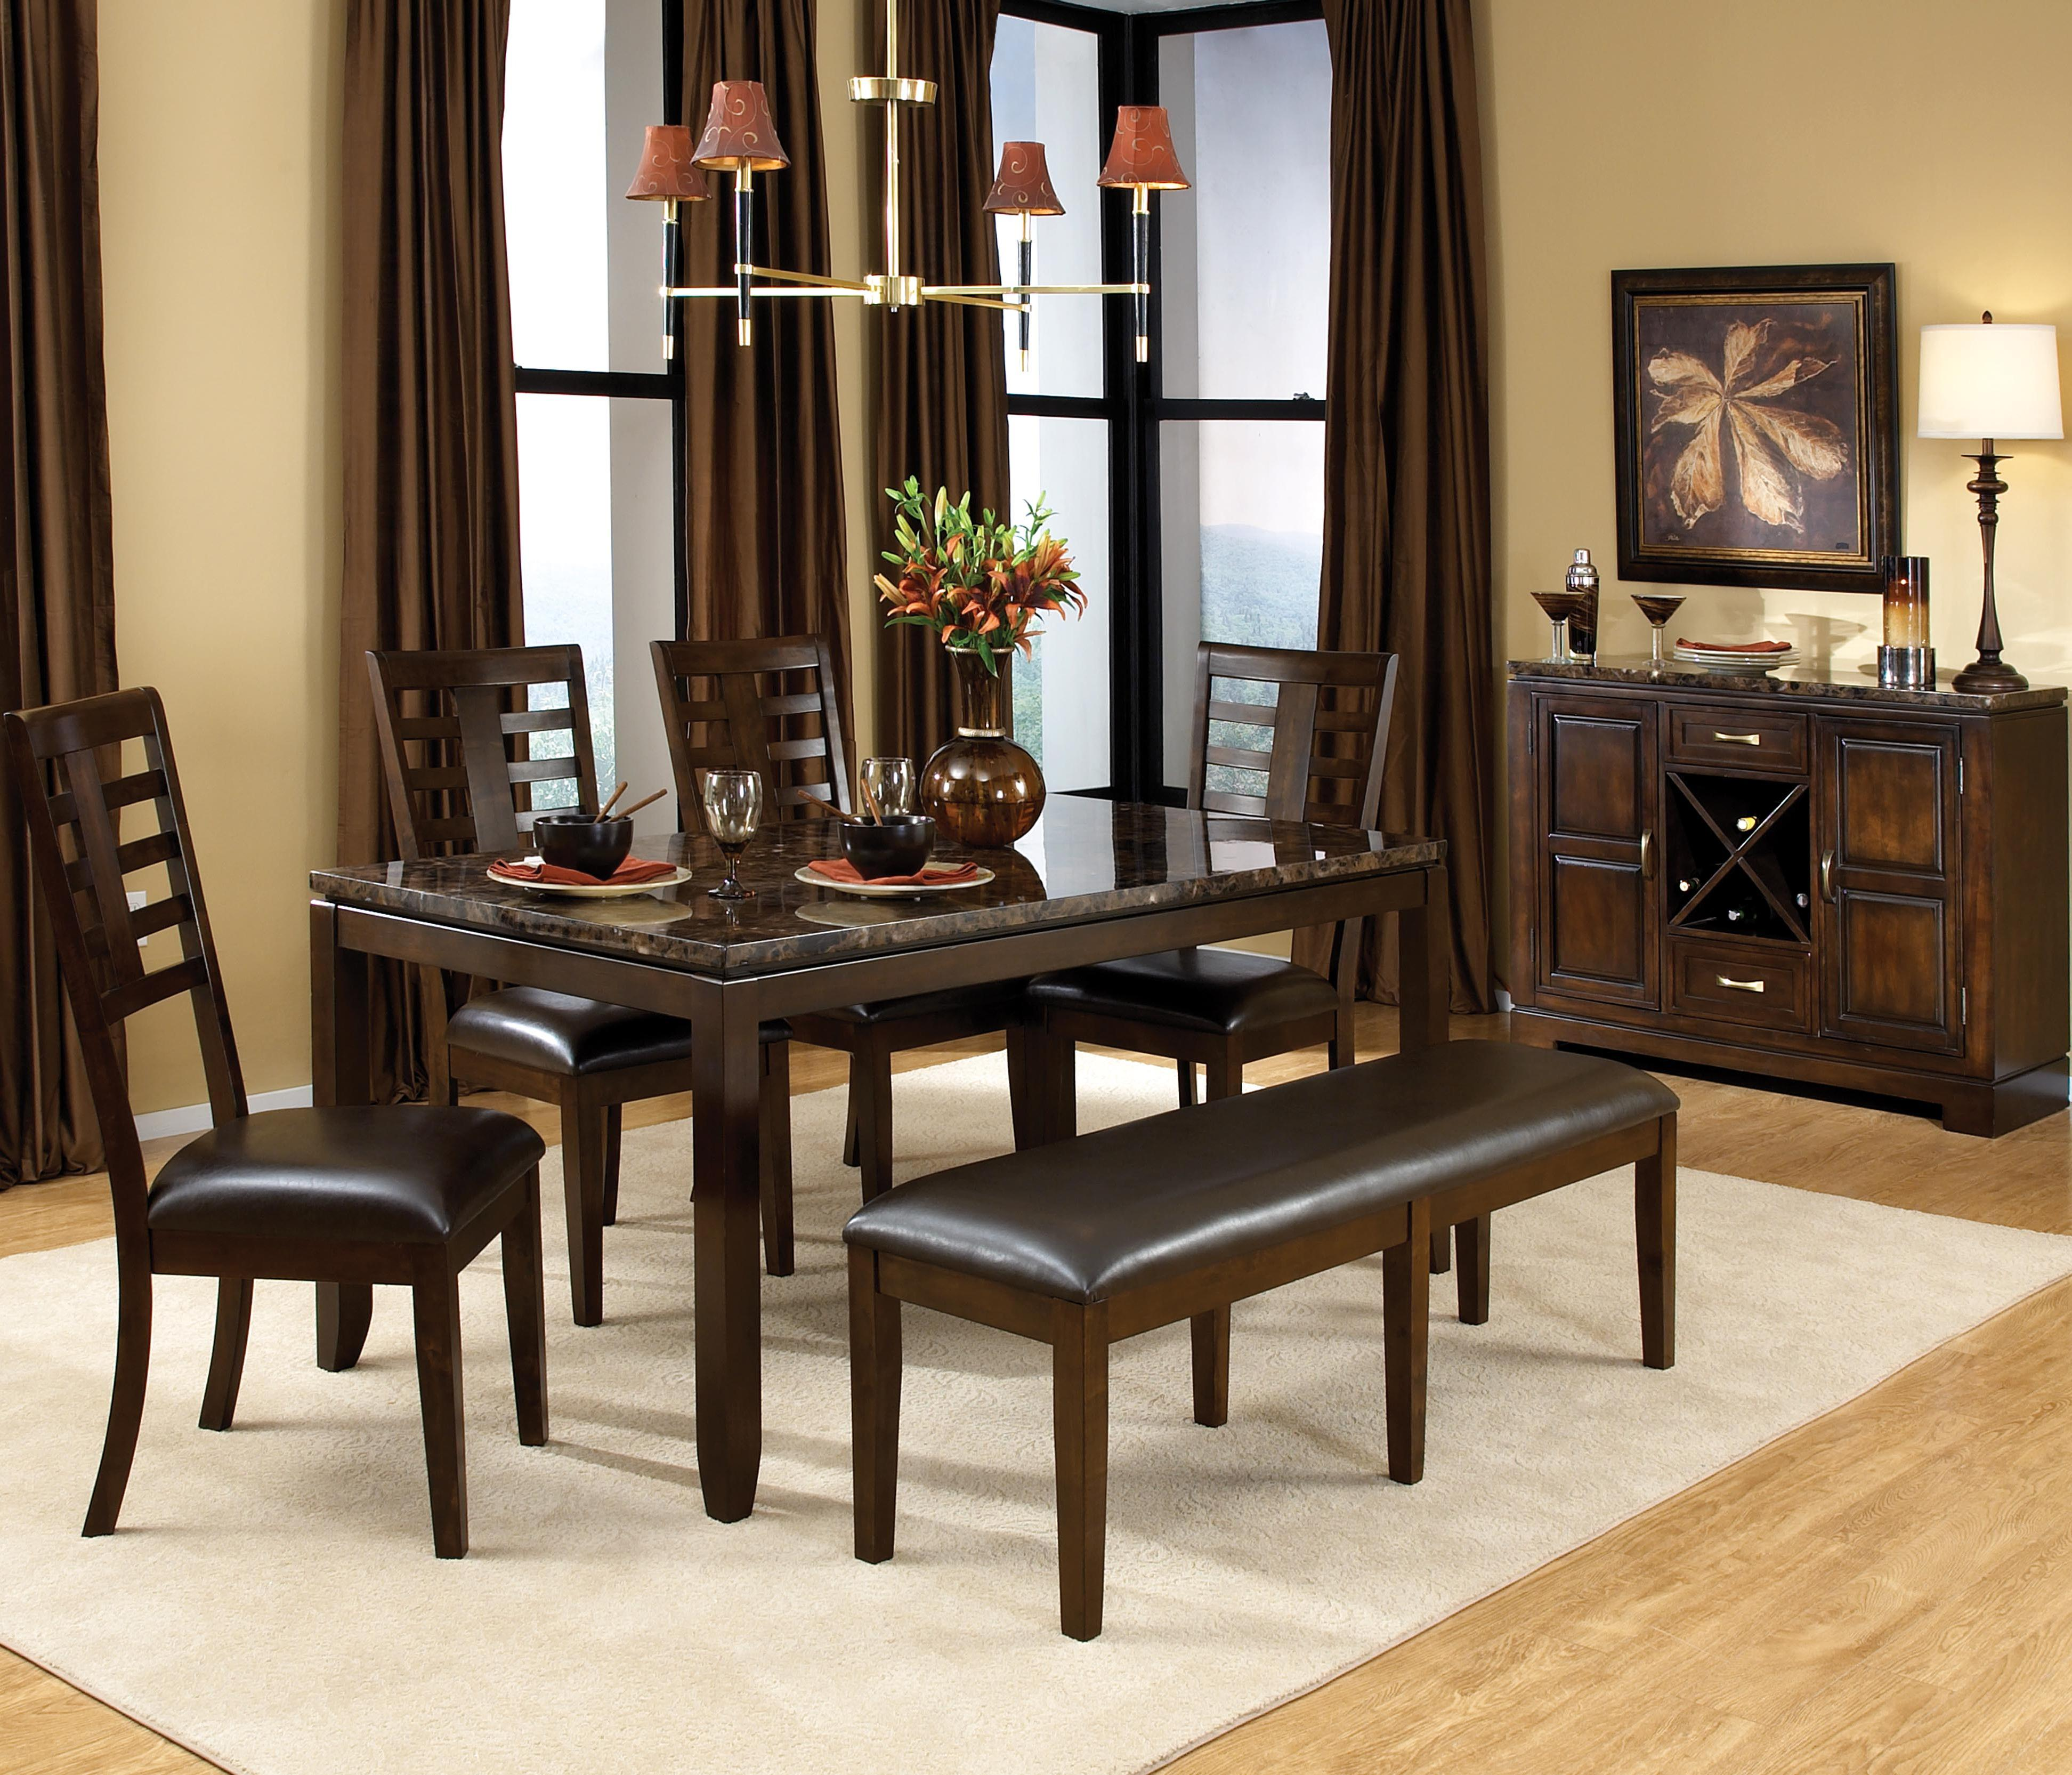 Standard Dining Room Table Size: Standard Furniture Bella 6 Piece Rectangular Leg Dining